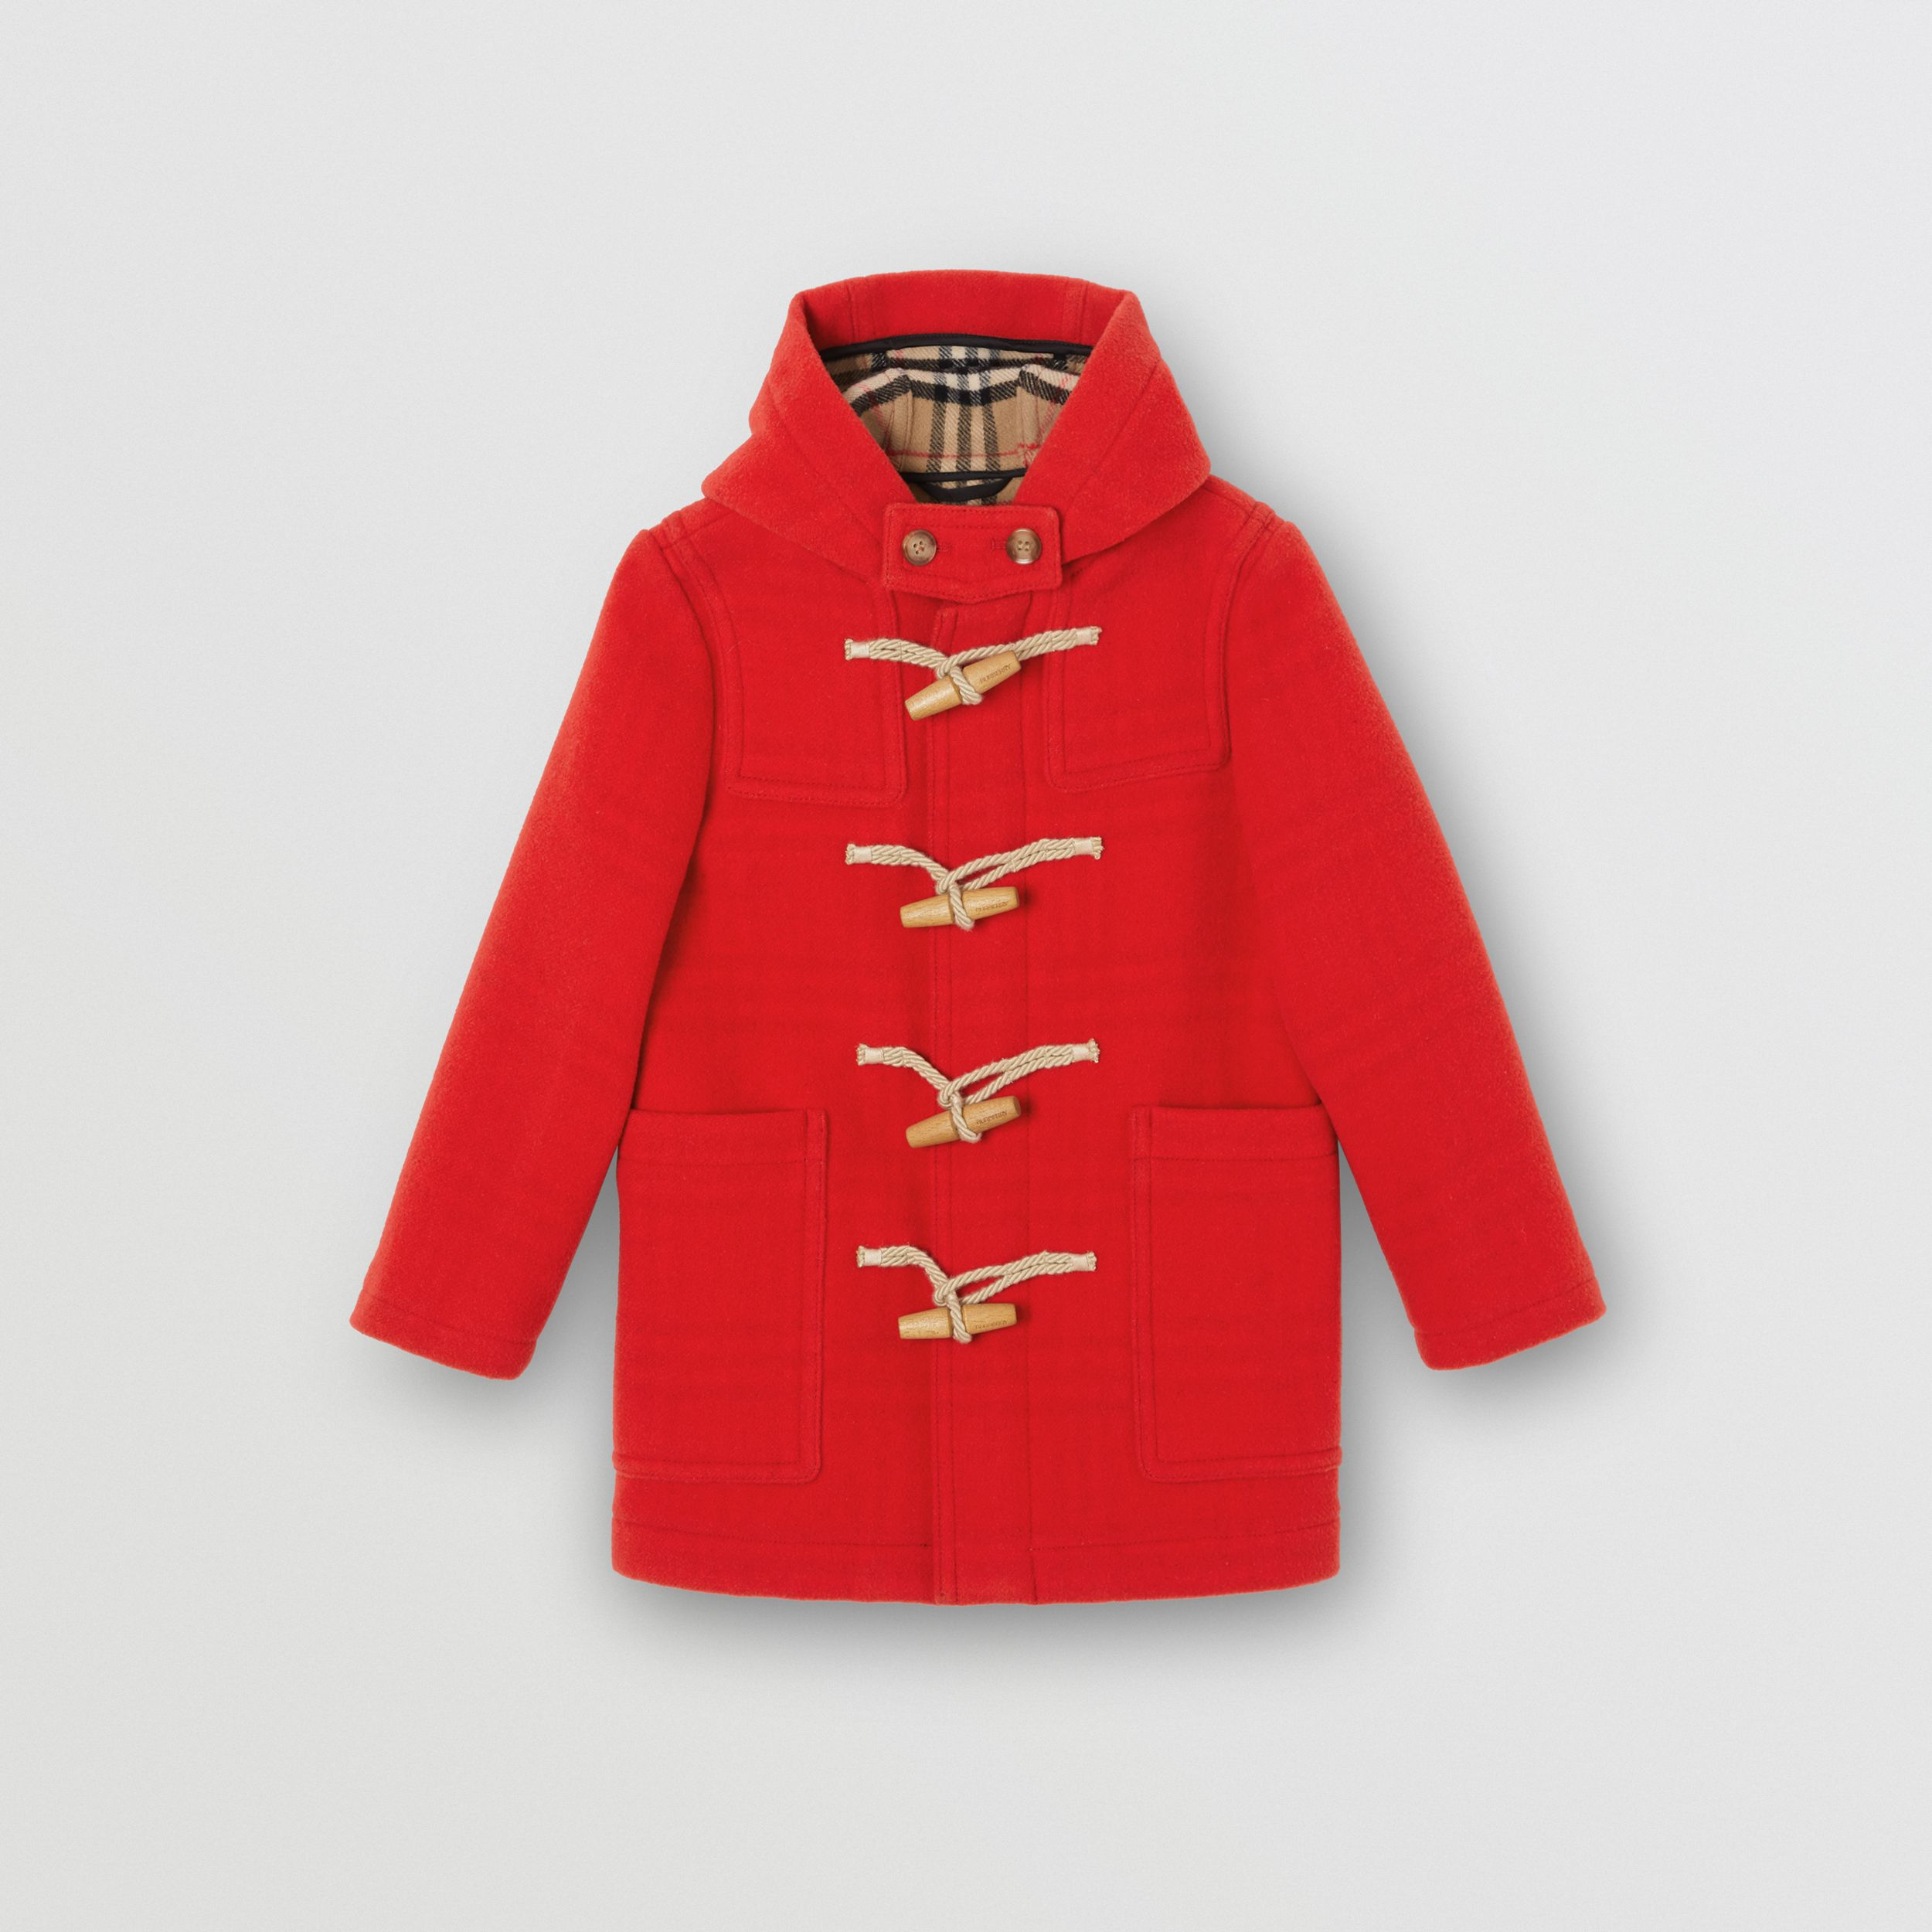 Double-faced Wool Duffle Coat in Bright Red | Burberry - 1